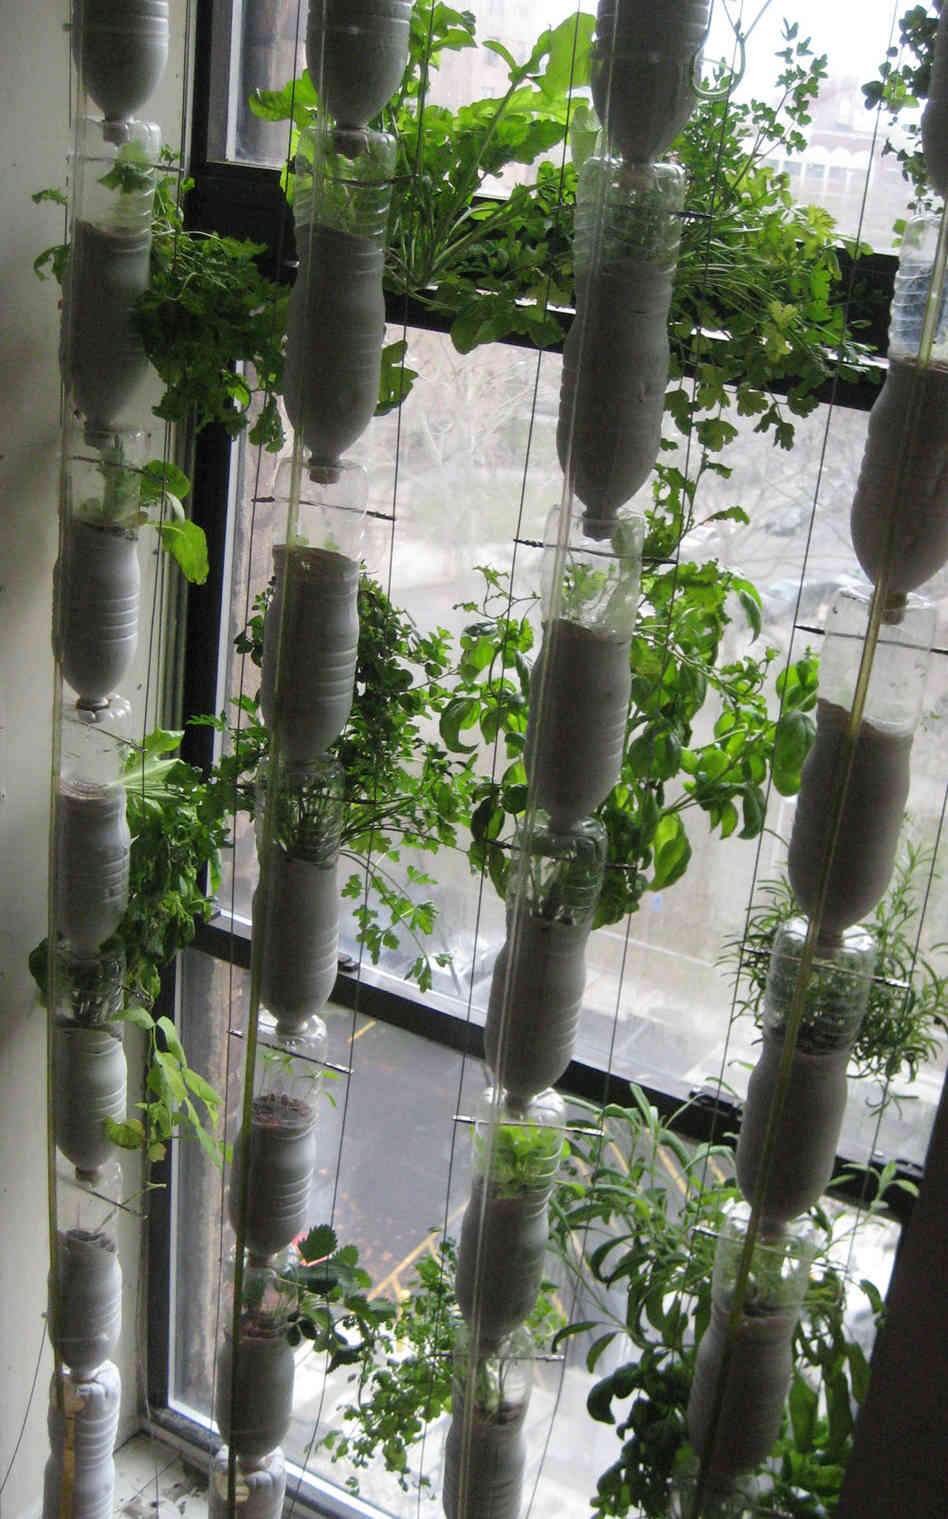 Window farming a do it yourself veggie venture 500eco - Small space farming image ...